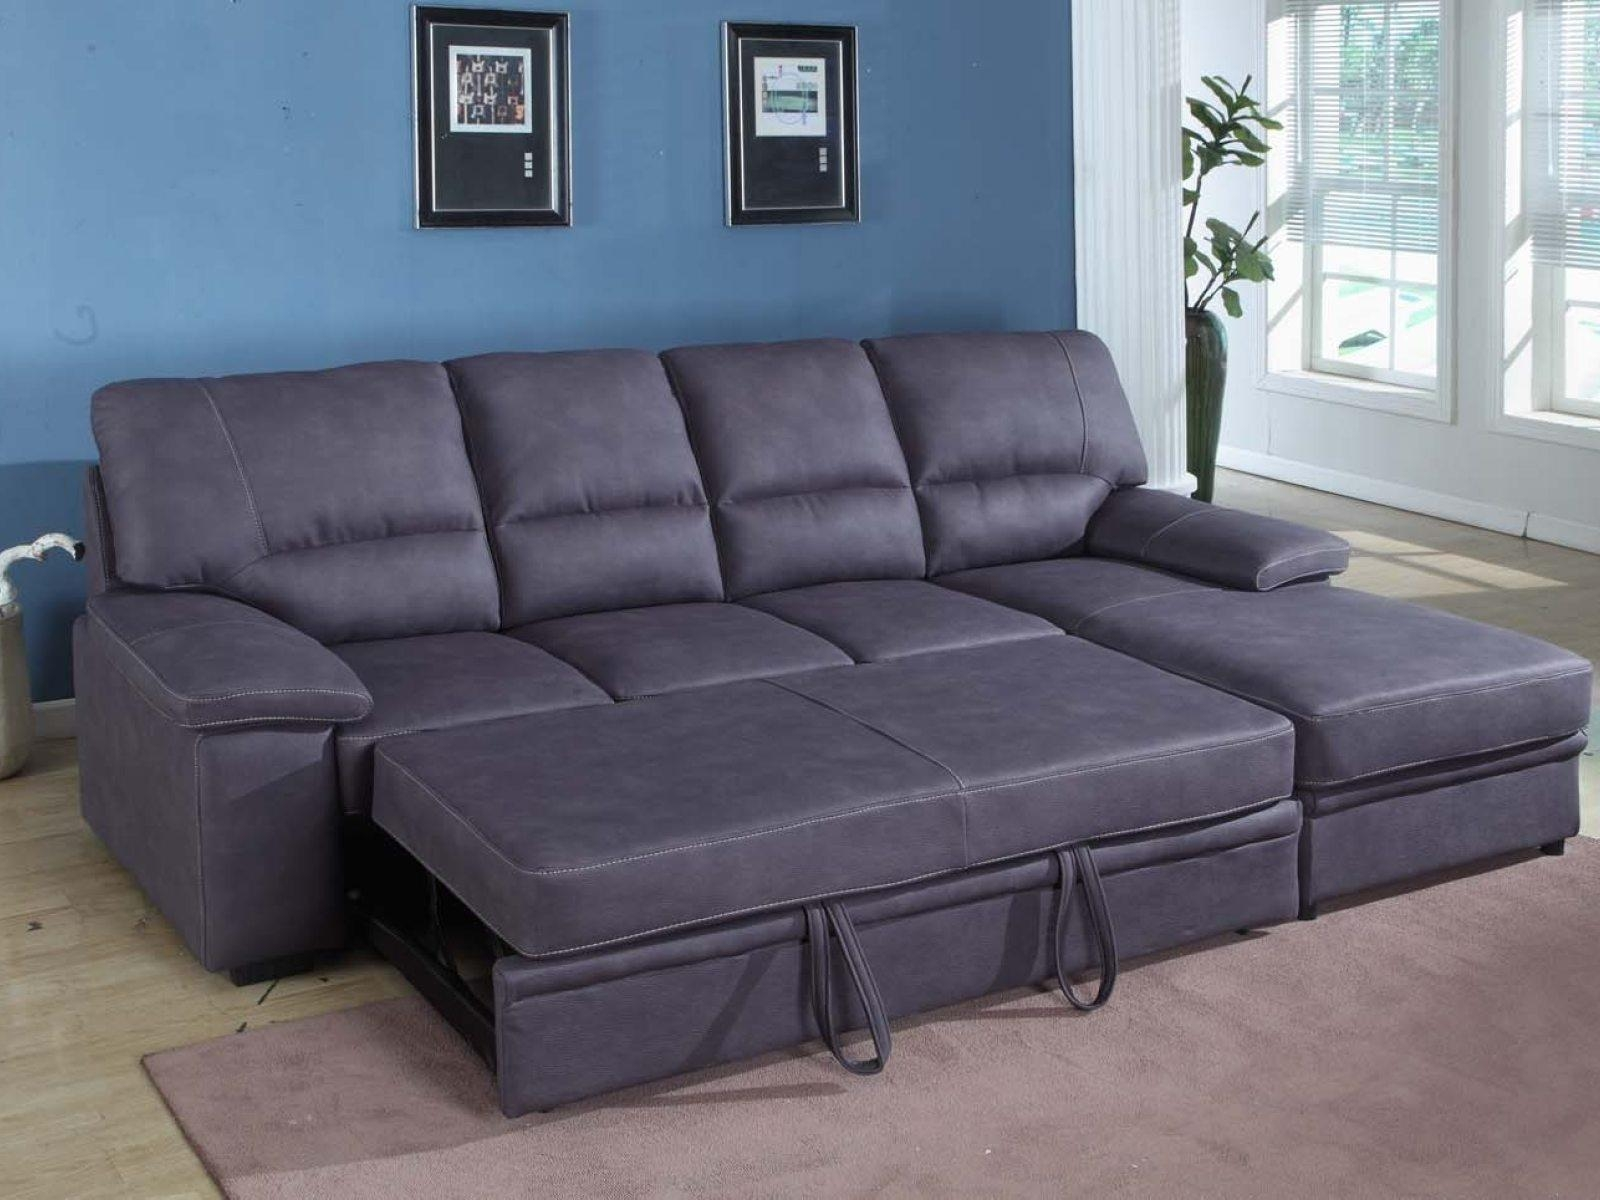 ▻ Sofa : 14 Brilliant Sectional Sleeper Sofa With Chaise Cool Throughout Sectional Sleeper Sofas With Chaise (View 18 of 20)